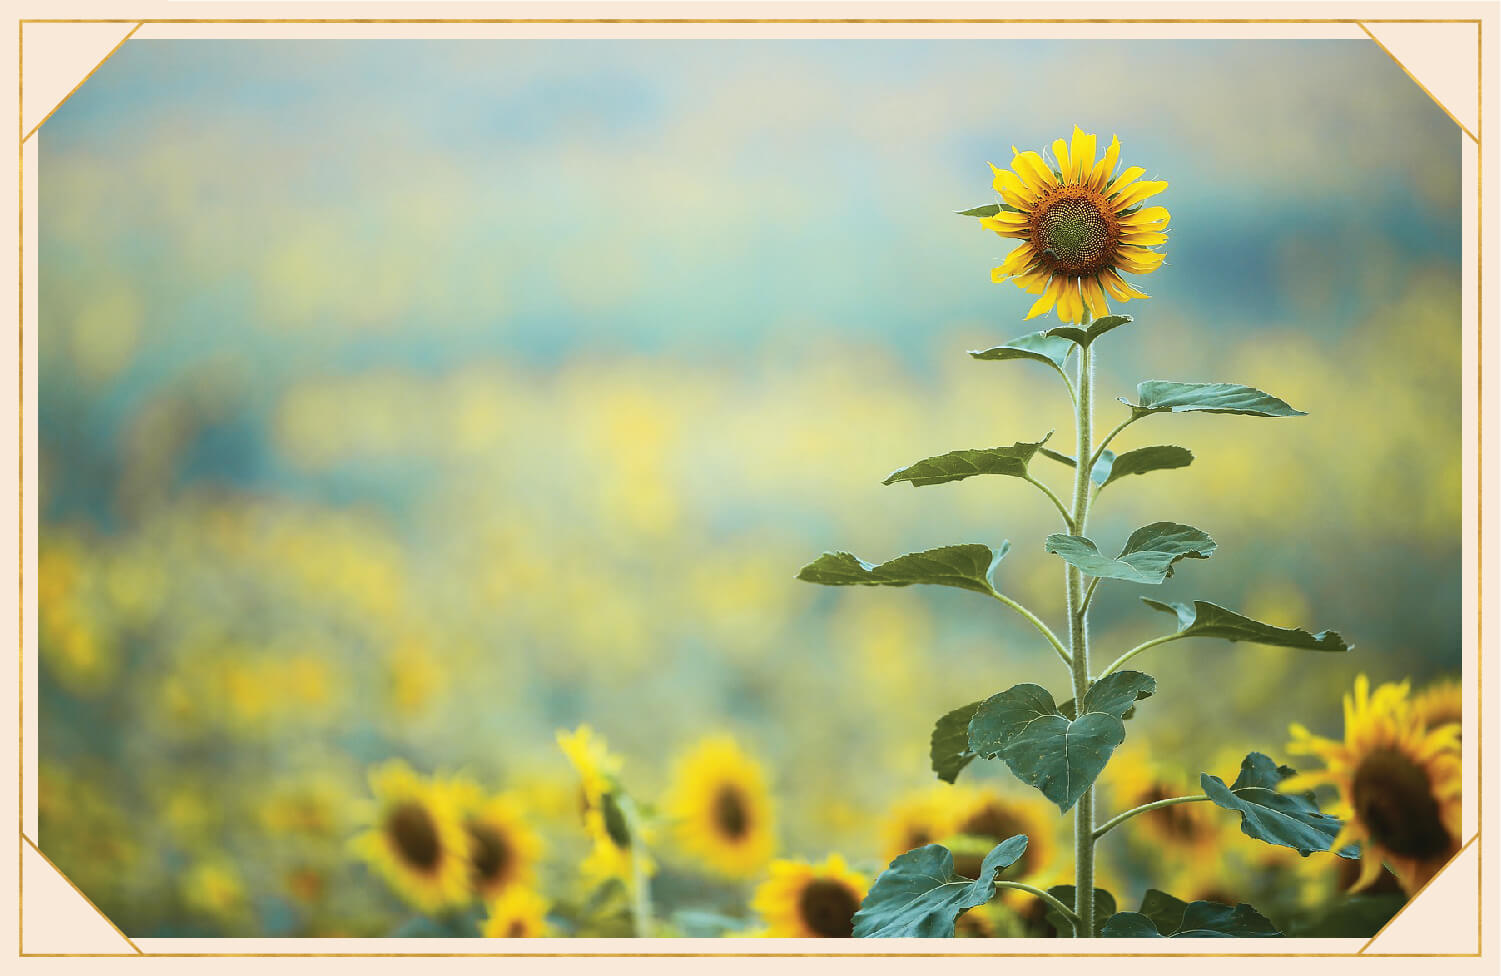 tall yellow sunflower with green leaves in a field